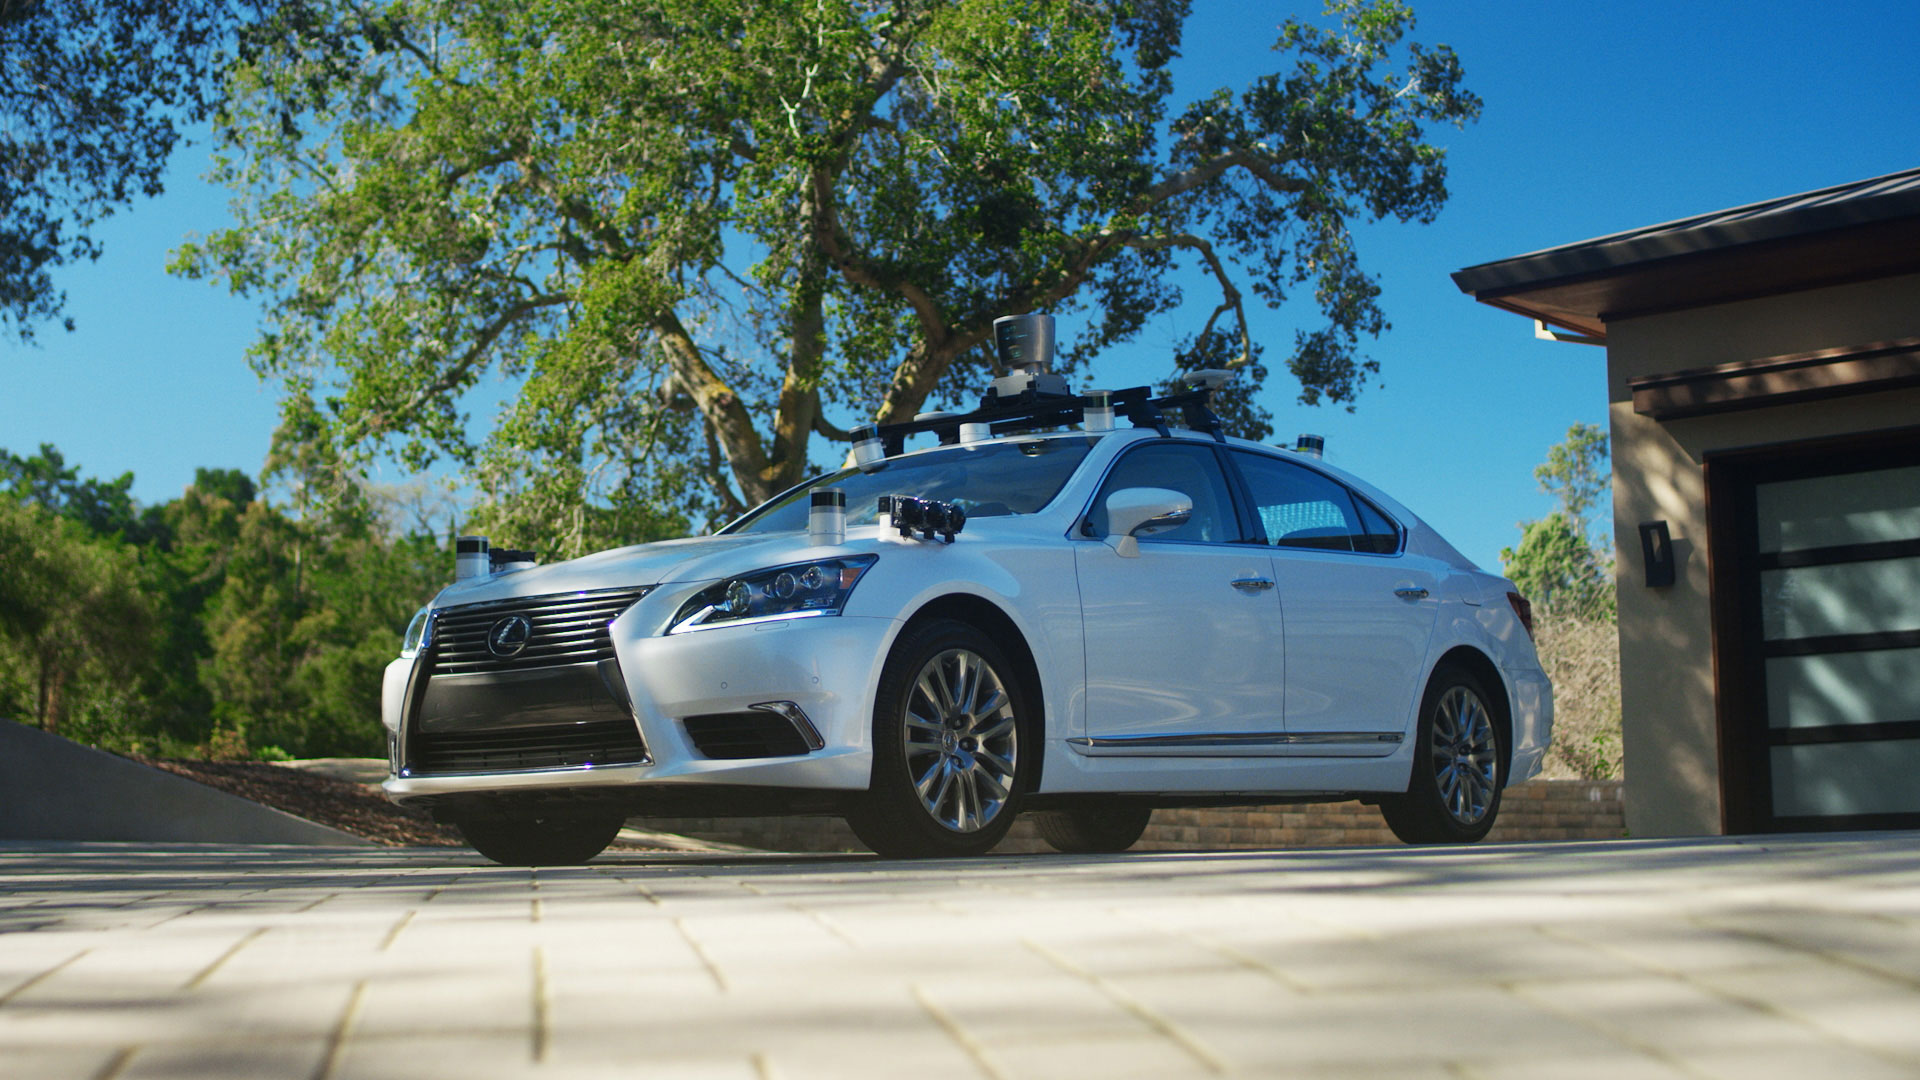 This modified Lexus is used by Toyota to test autonomous driving software.